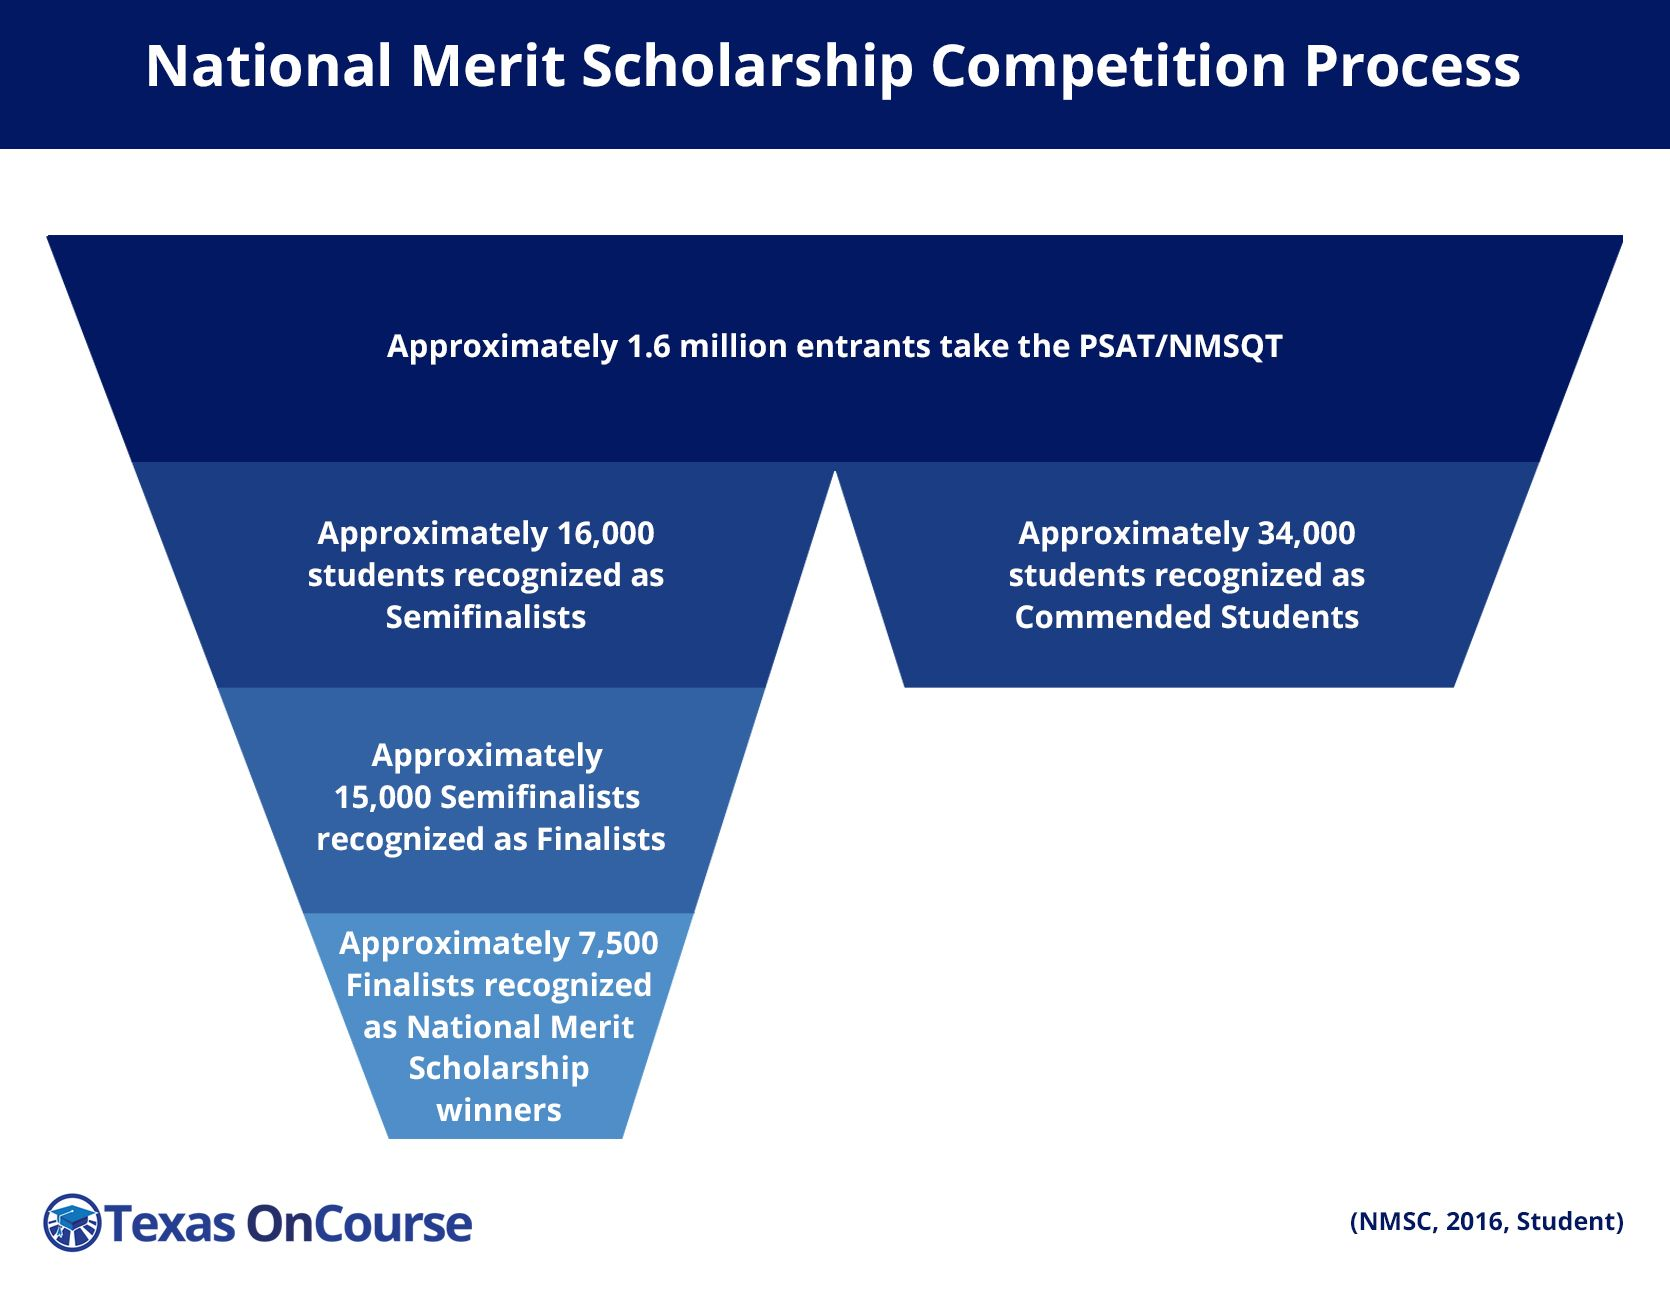 Helpful information about the national merit scholarship